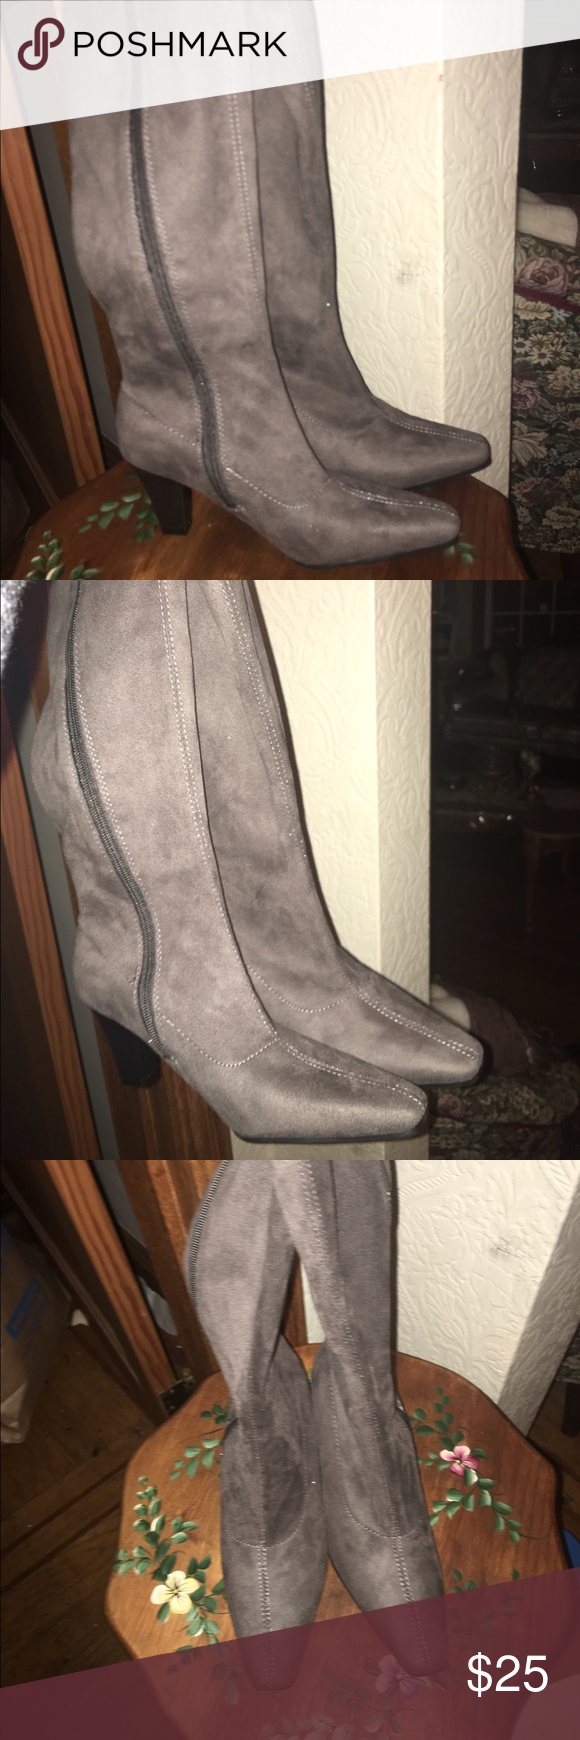 Grey boots Brand new boots that have been taking up space in my closet. I no longer have the box but they are in great condition . Size 6 1/2 Shoes Heeled Boots